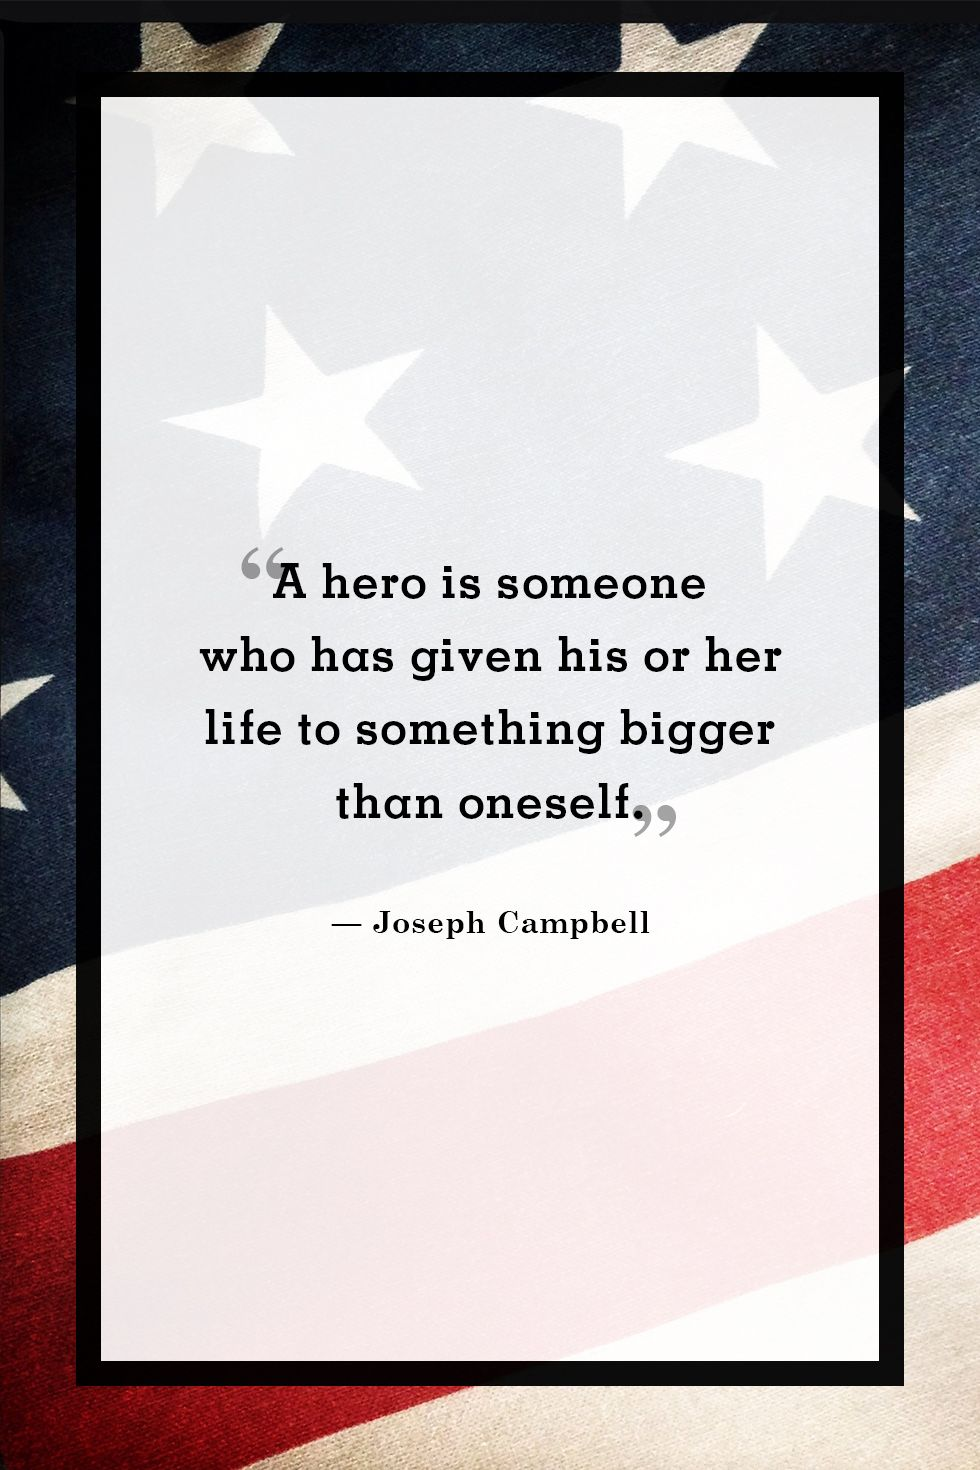 Fallen Soldier Quotes Pleasing 10 Famous Memorial Day Quotes That Honor America's Fallen Heroes